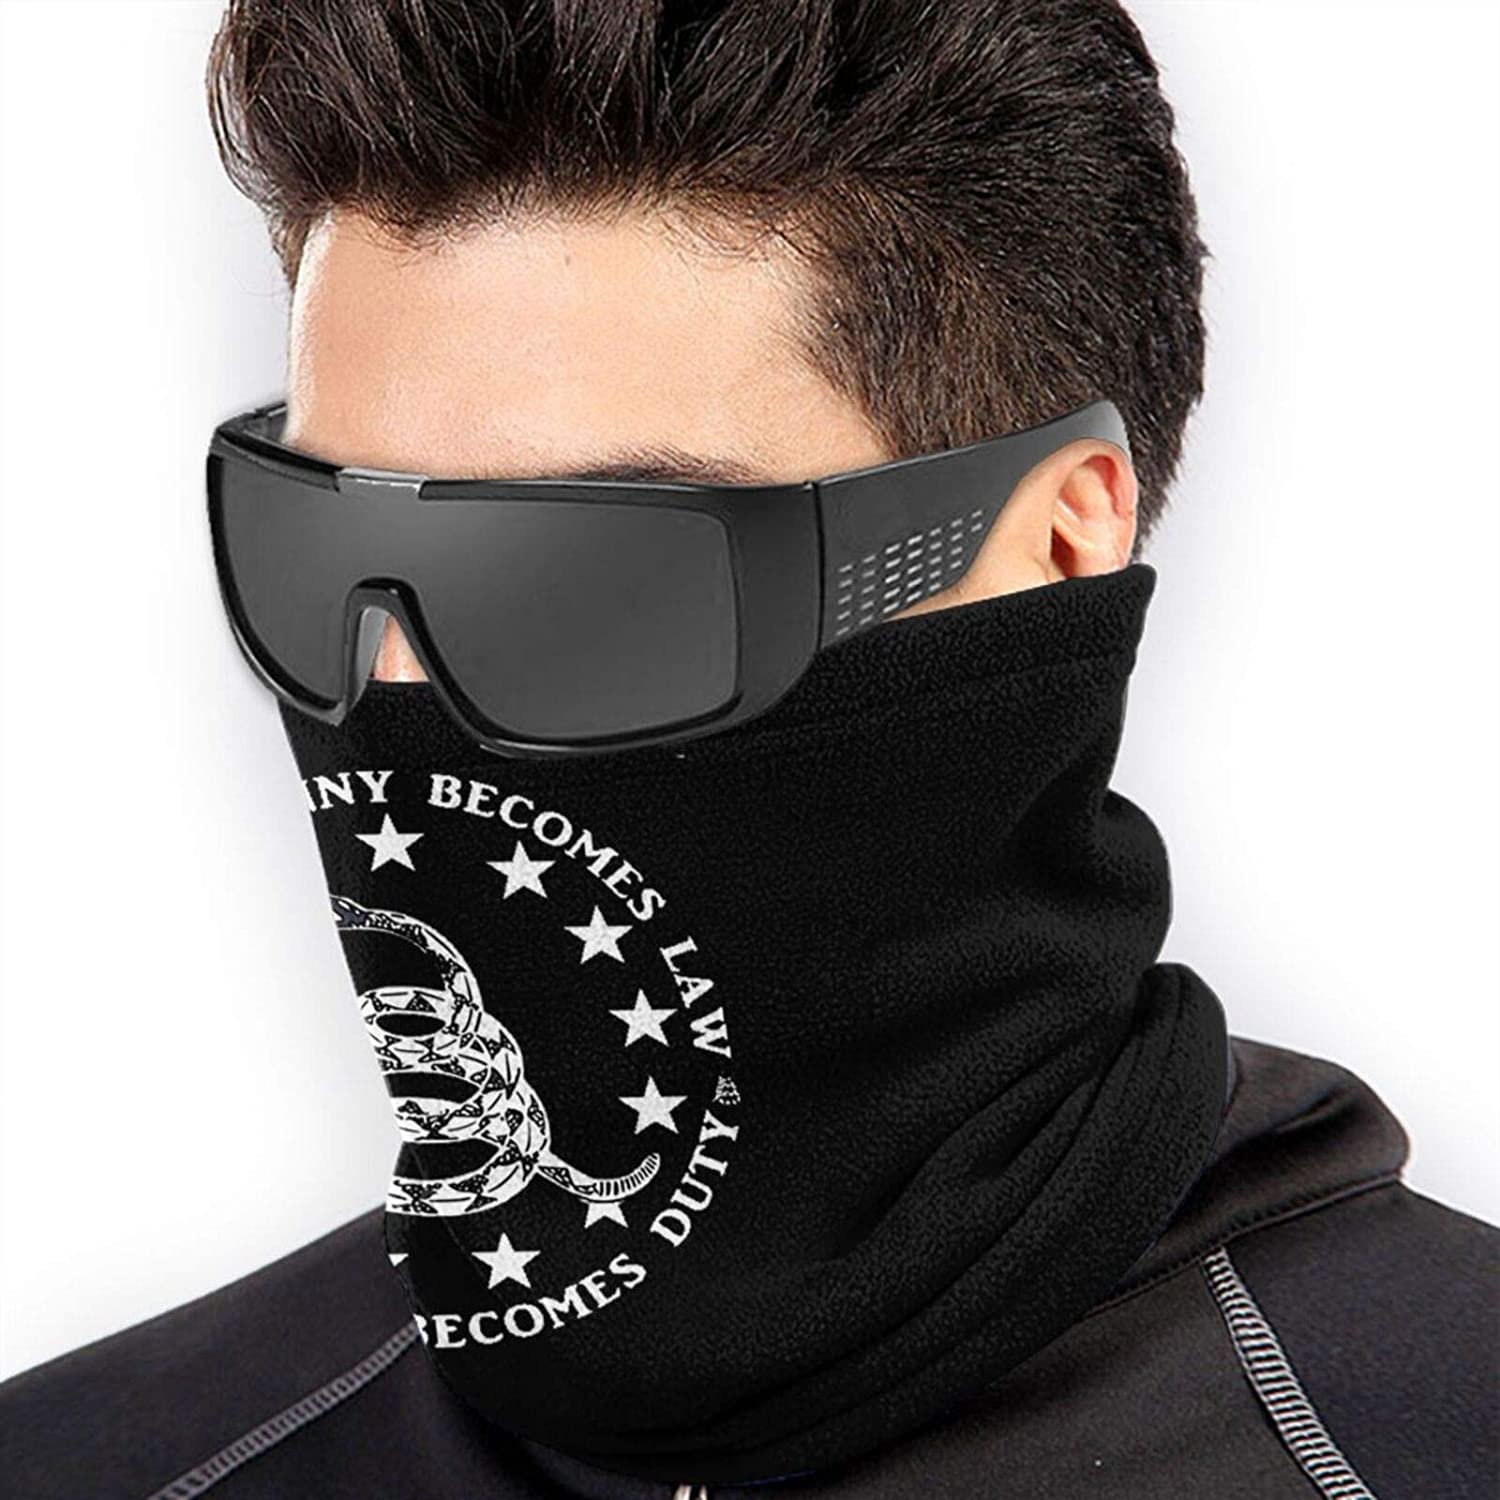 OHUESXJK When Tyranny Becomes Law Rebellion Becomes Duty Mens Neck Warmer Scarf Cool Sports Autum